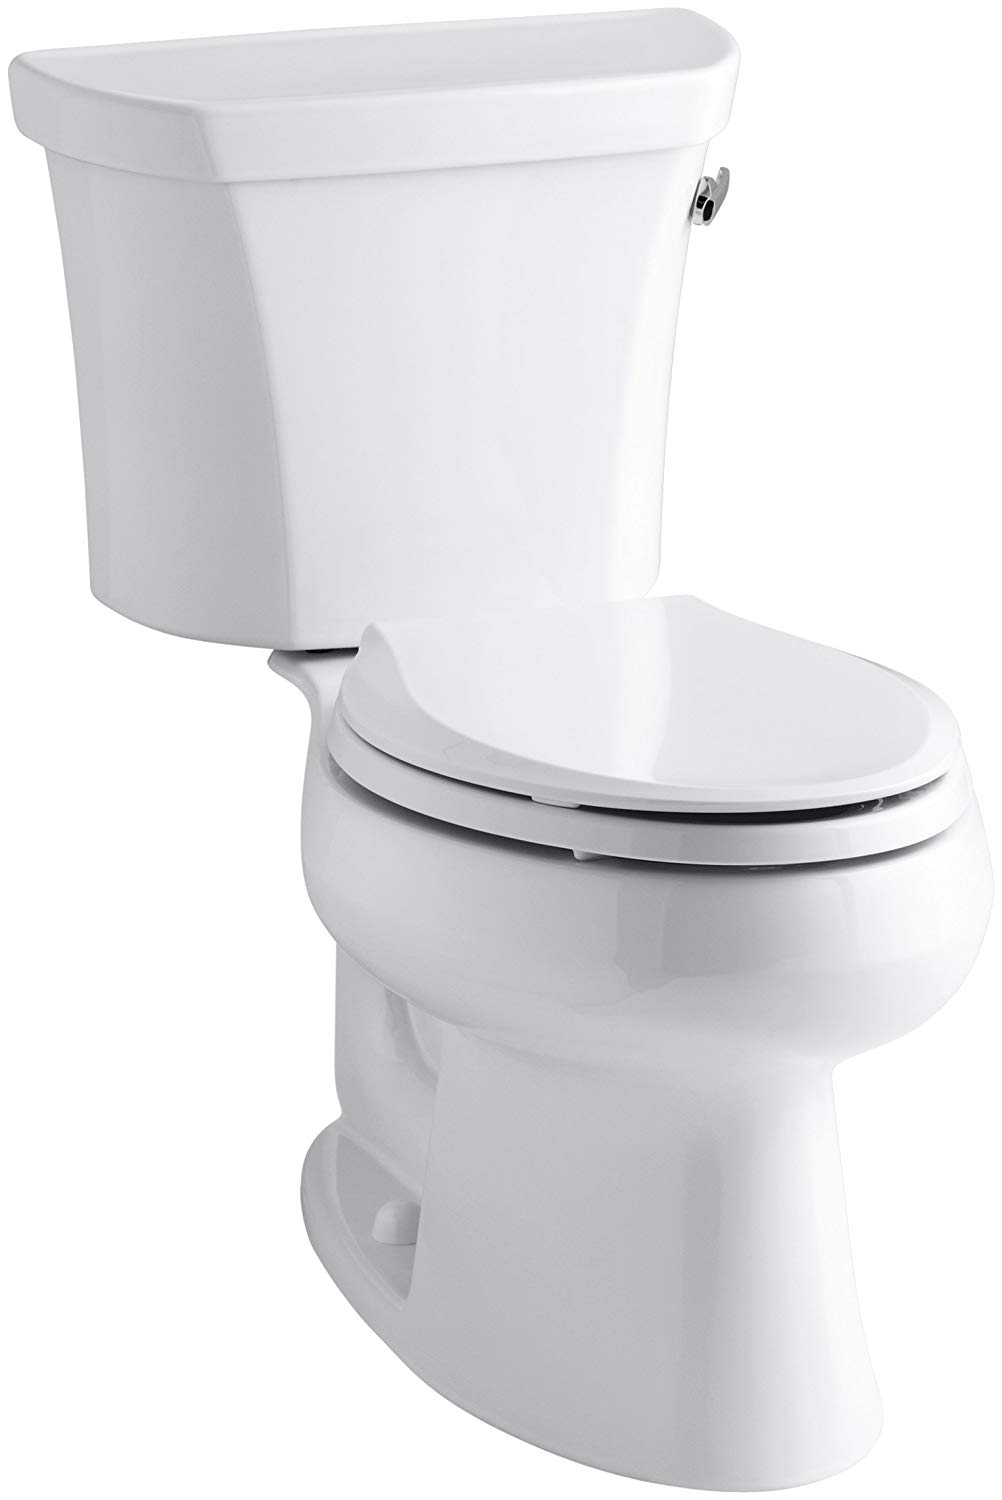 Kohler Wellworth Elongated 1.6 GPF Toilet